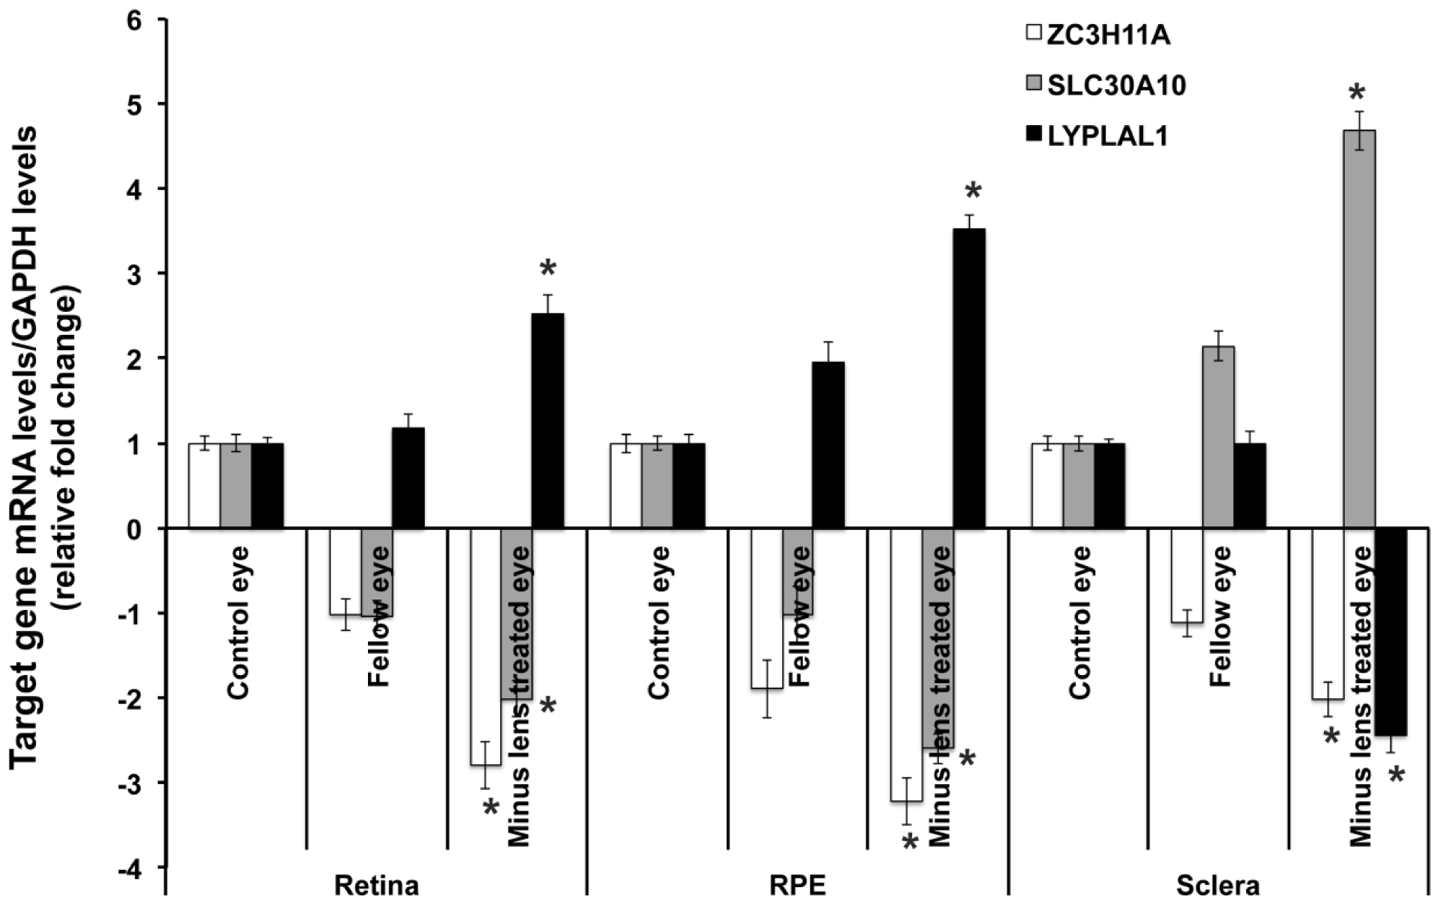 Transcription quantification of <i>ZC3H11A</i>, <i>SLC30A10</i>, and <i>LYPLAL1</i> in mouse retina, retinal pigment epithelium, and sclera in induced myopic eyes, fellow eyes, and independent control eyes.